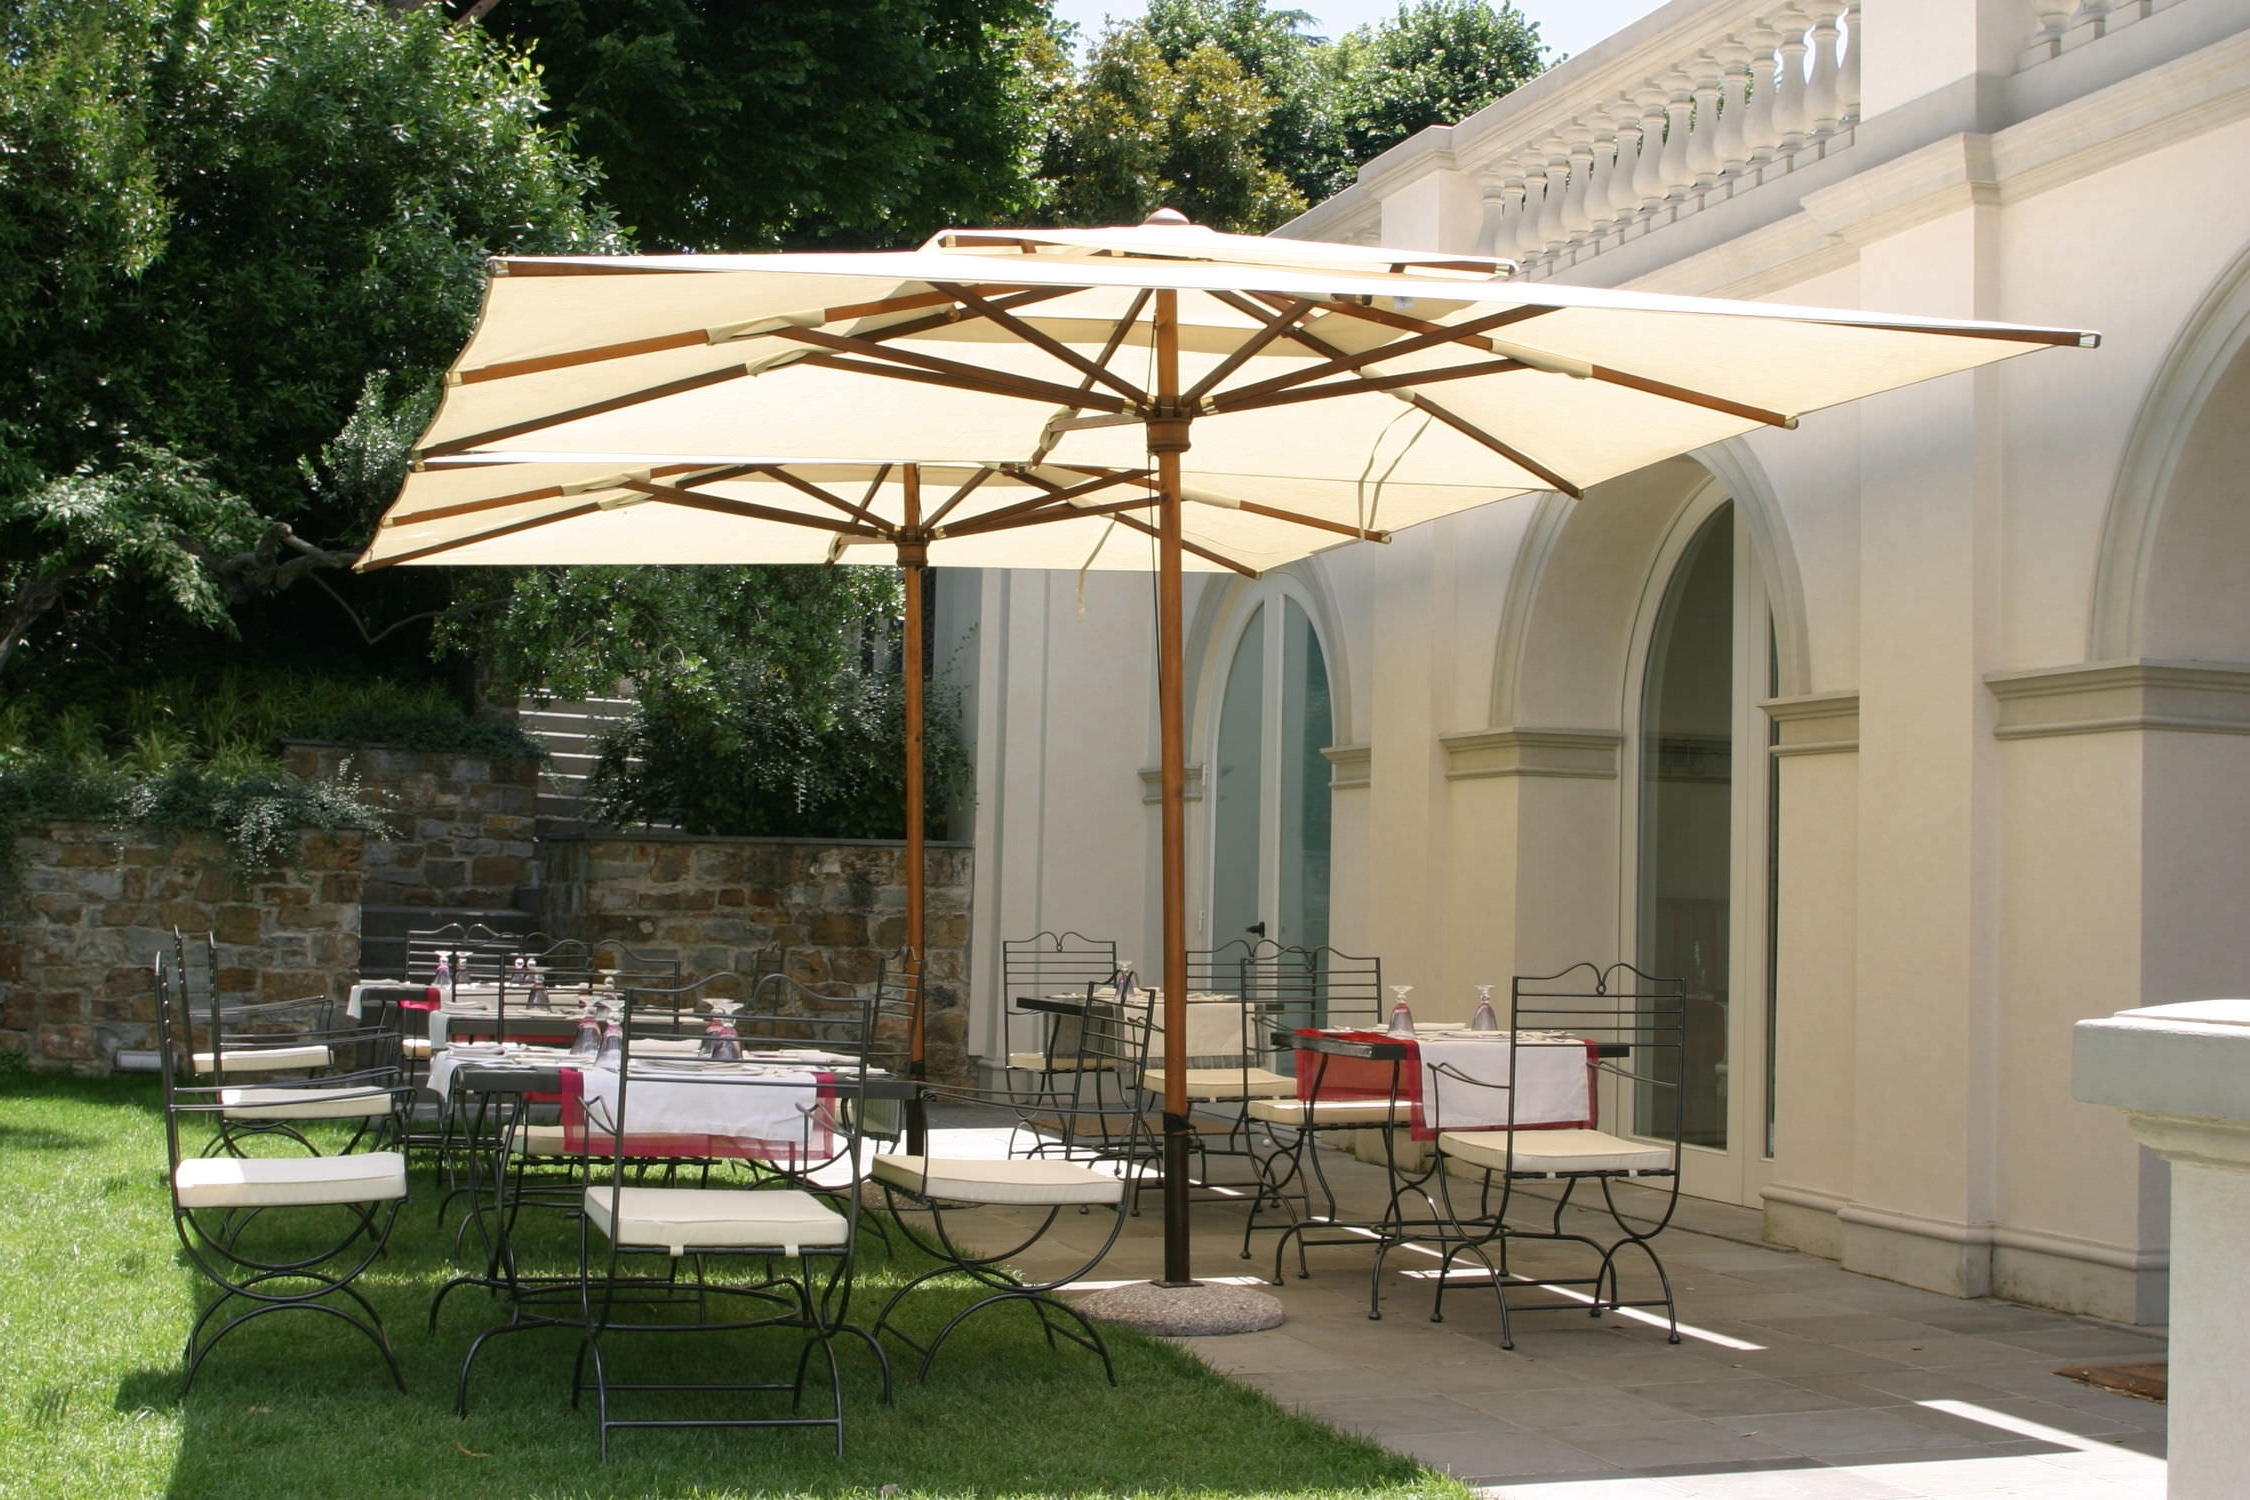 Newest Wooden Patio Umbrellas Inside Wooden Patio Umbrella Poker Garden Art Wood Frame Umbrellas (View 15 of 20)